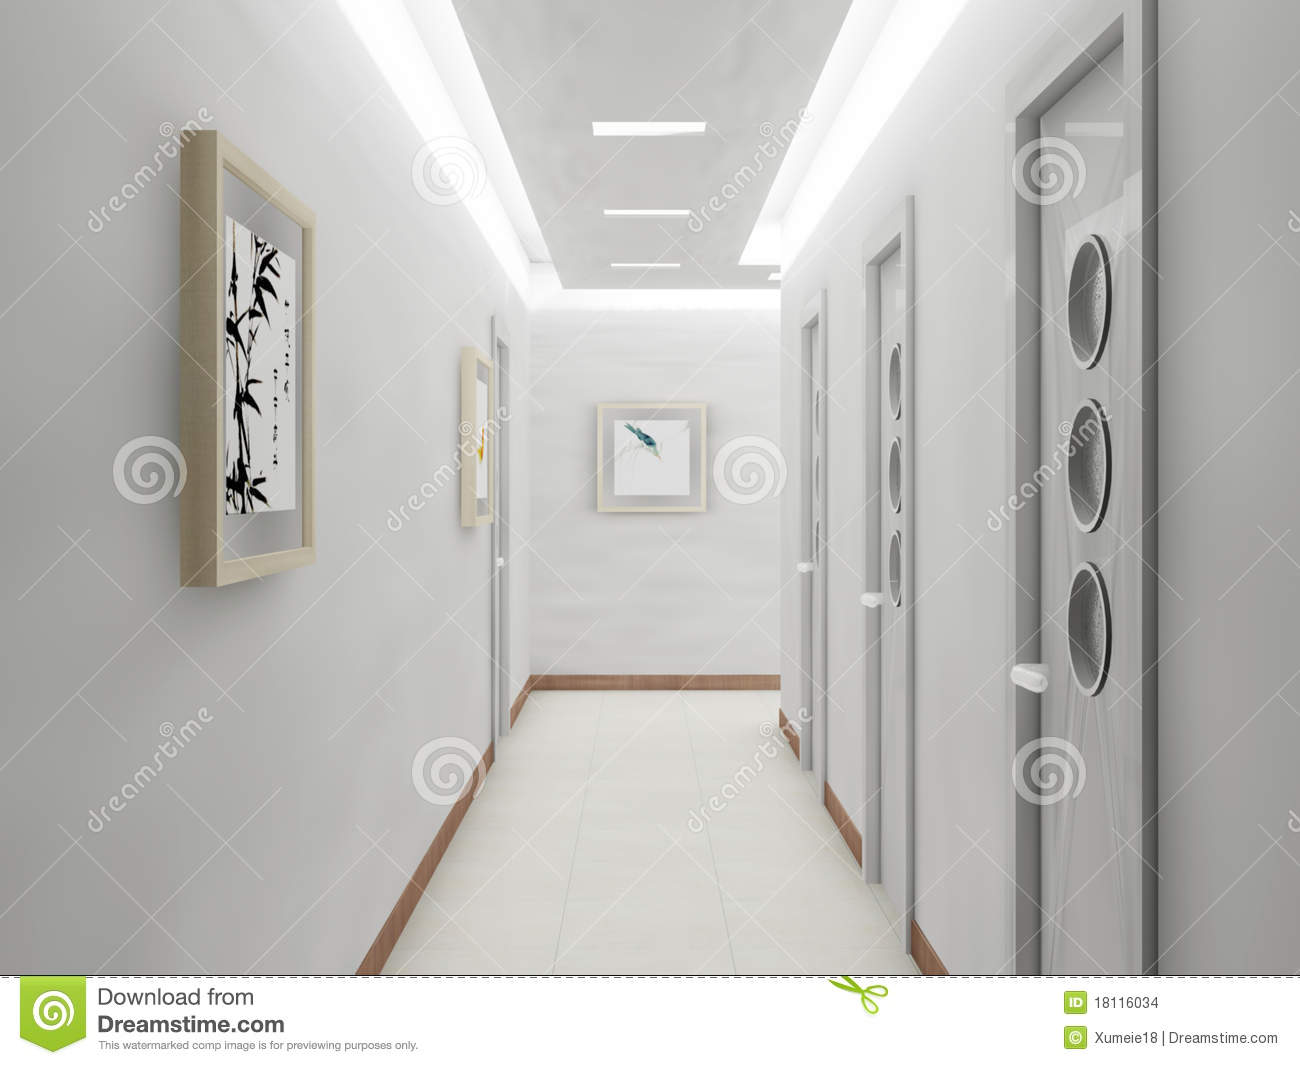 Rendu du couloir moderne illustration stock. Illustration du moderne ...